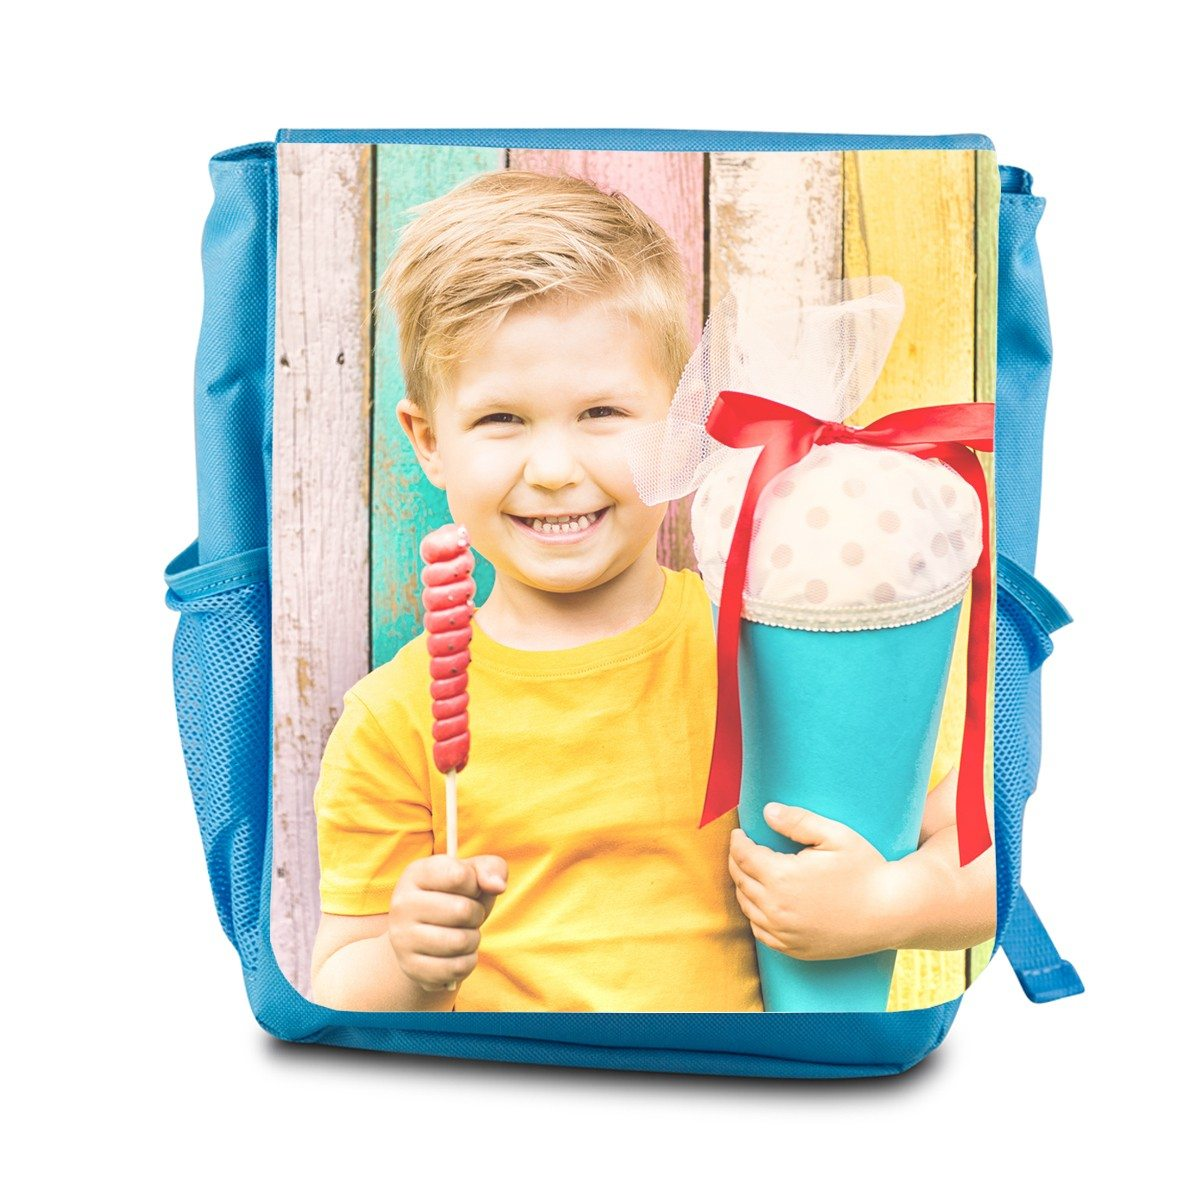 PERSONALIYED CHILDREN BAGPACK WITH PHOTO PRINT